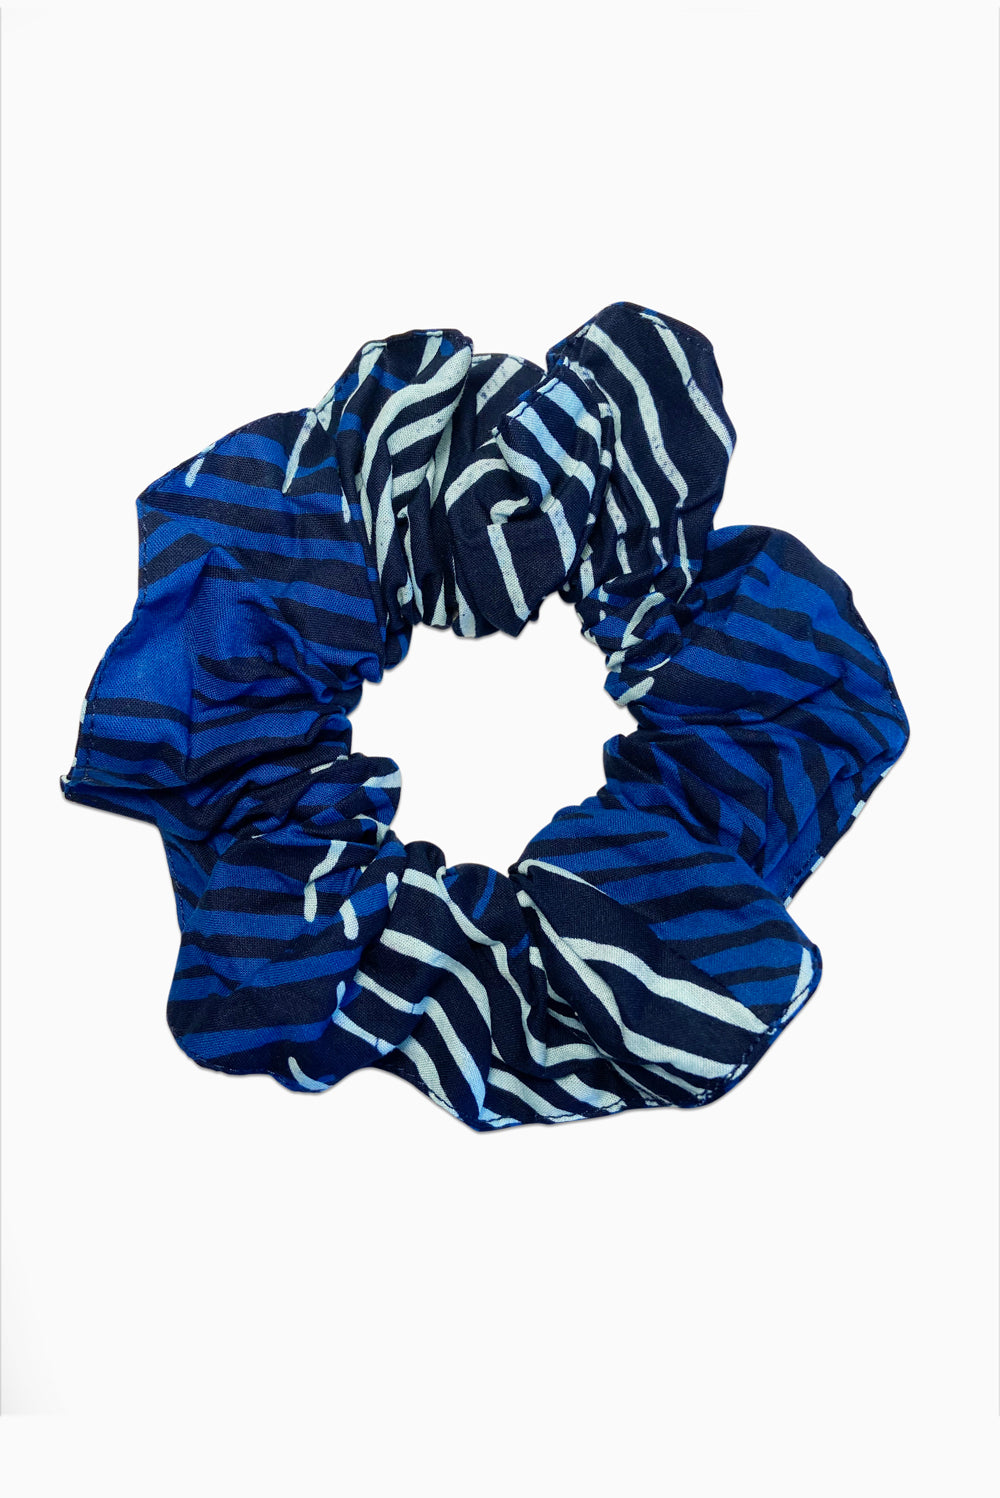 Navy & White (Bluetifful) -  Handmade Batik Scrunchie